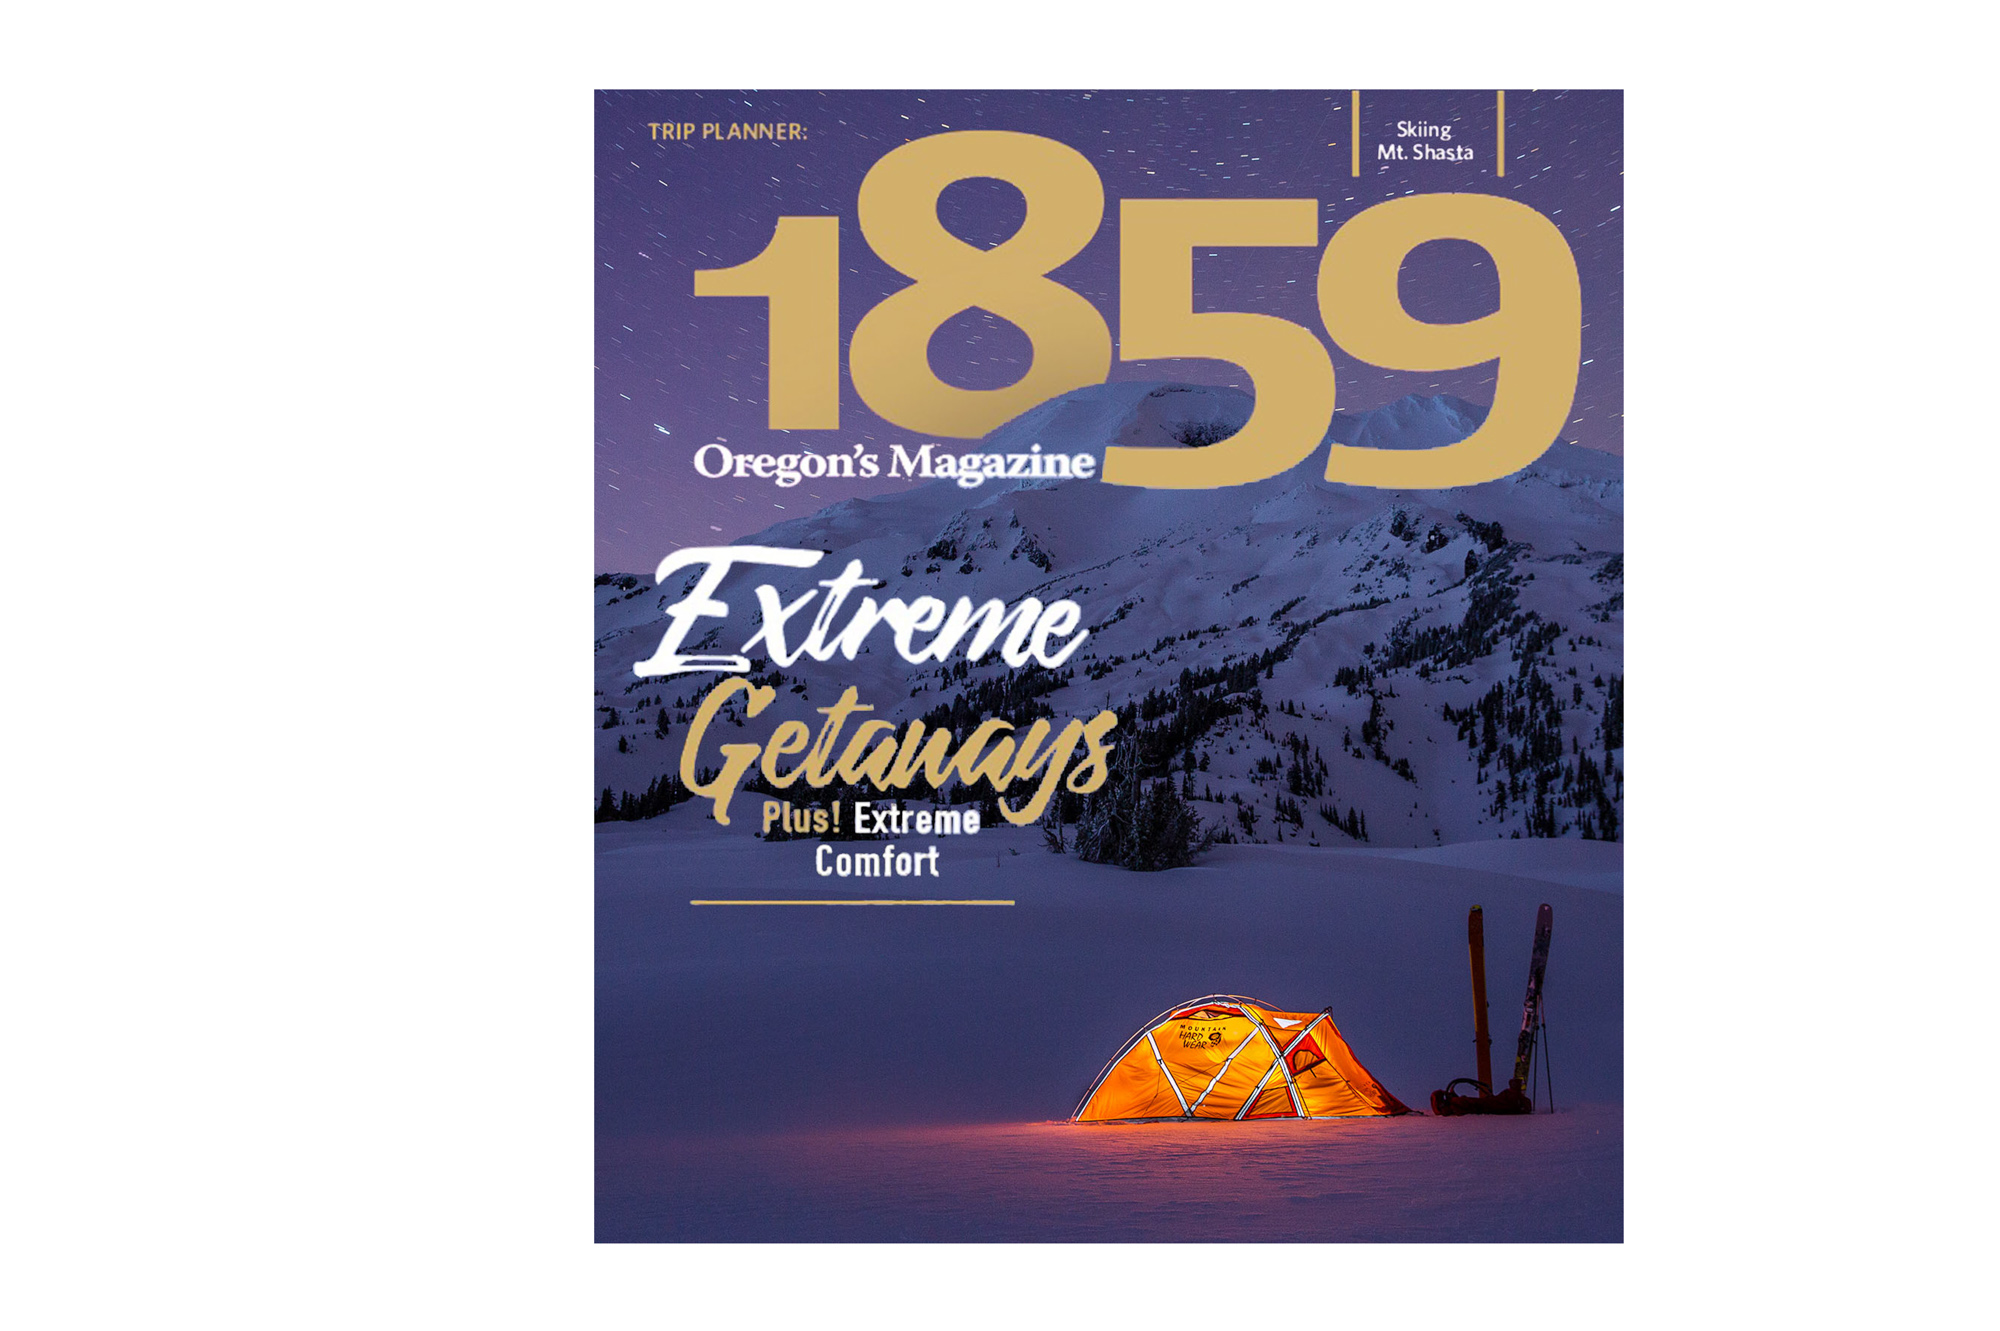 1859-oregons-magazine-cover-night-exposure-tent-winter-camp.JPG